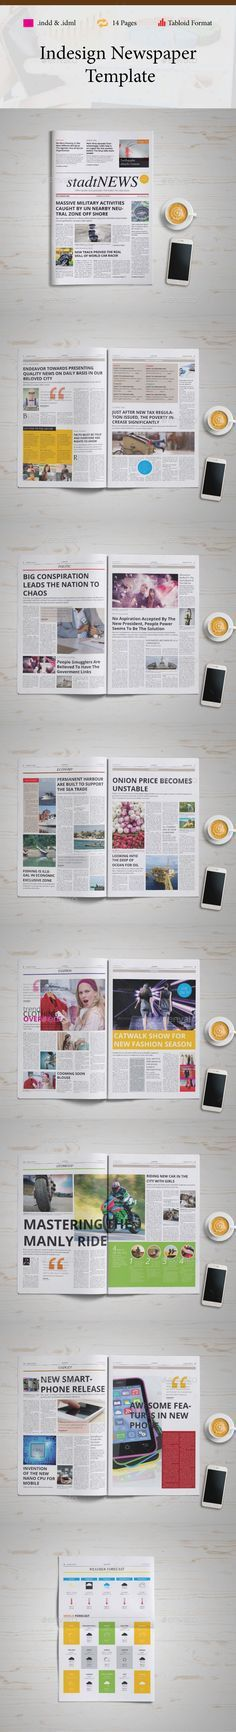 24 Pages Newspaper | Newspaper, Print templates and Newspaper design